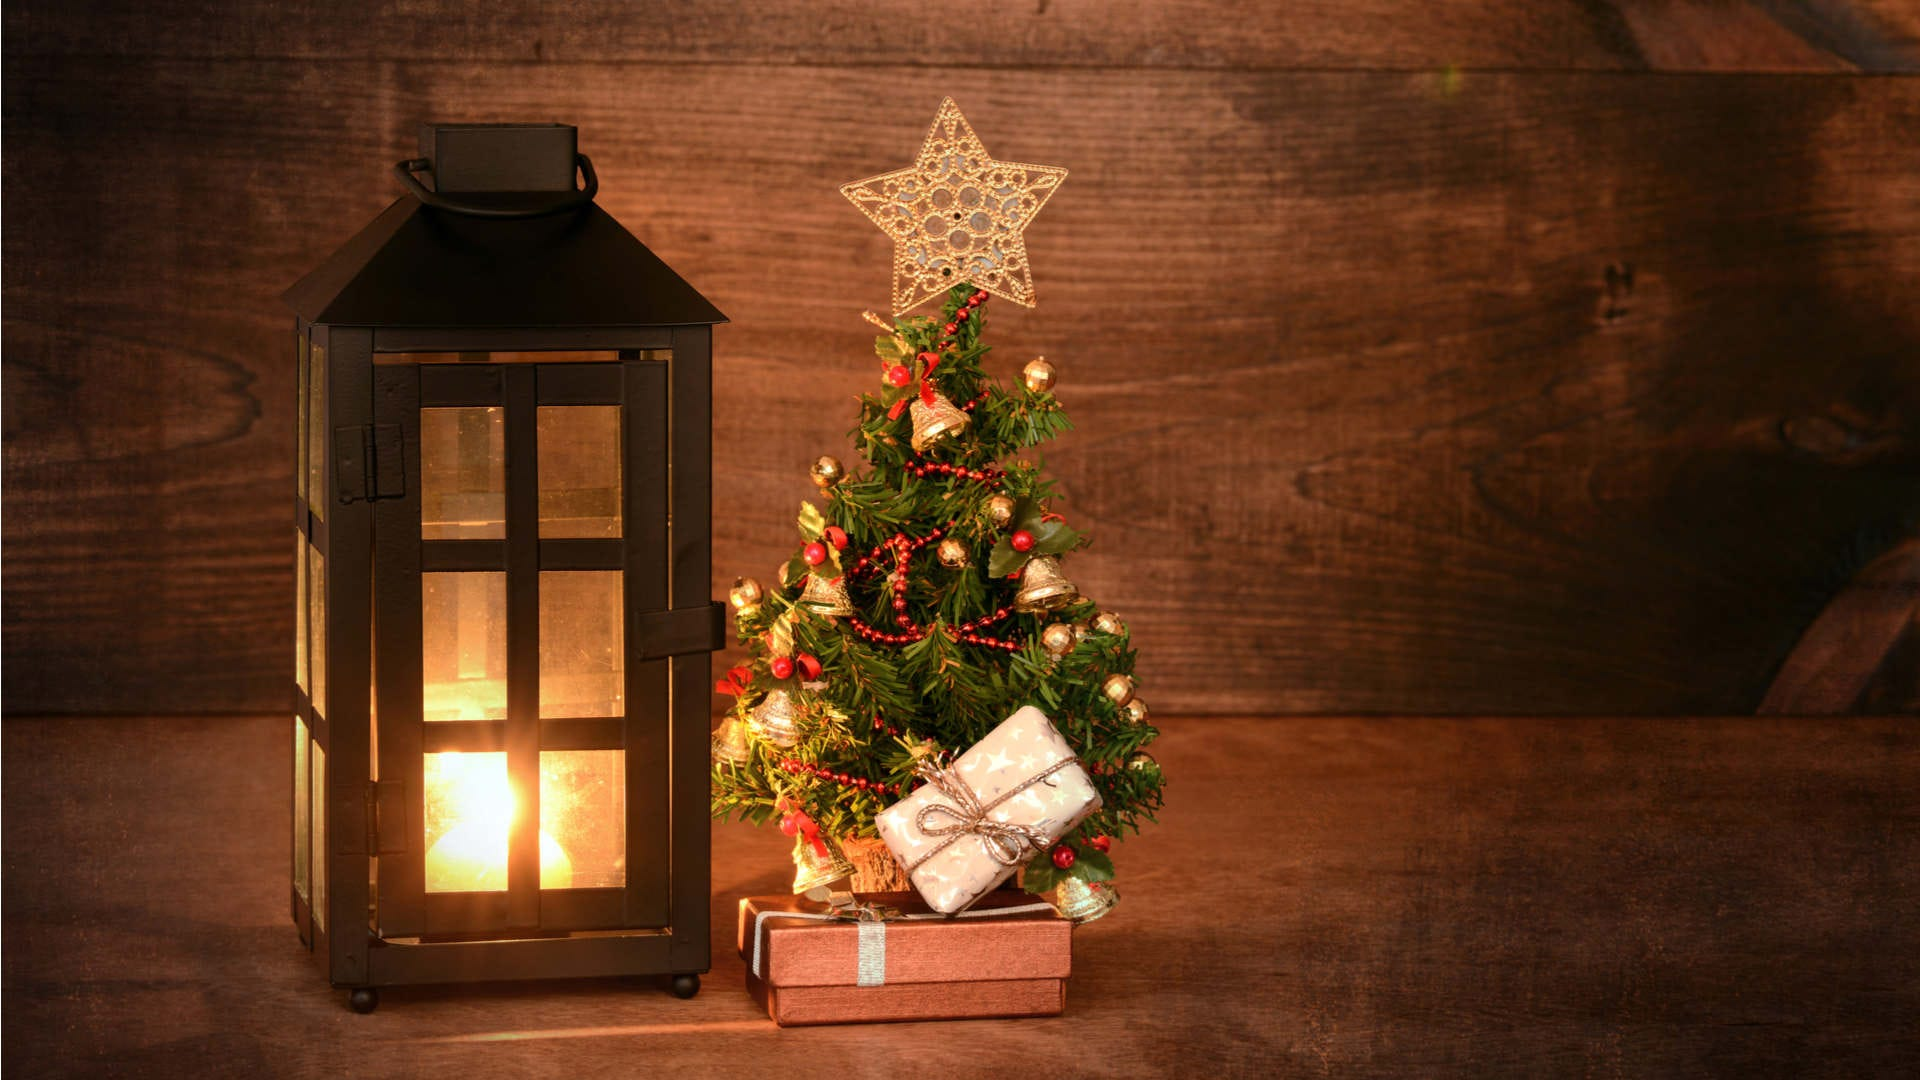 Large artificial Christmas trees are great in many scenarios, but sometimes you want a small mini or tabletop Christmas tree to add some festive spirit to ...